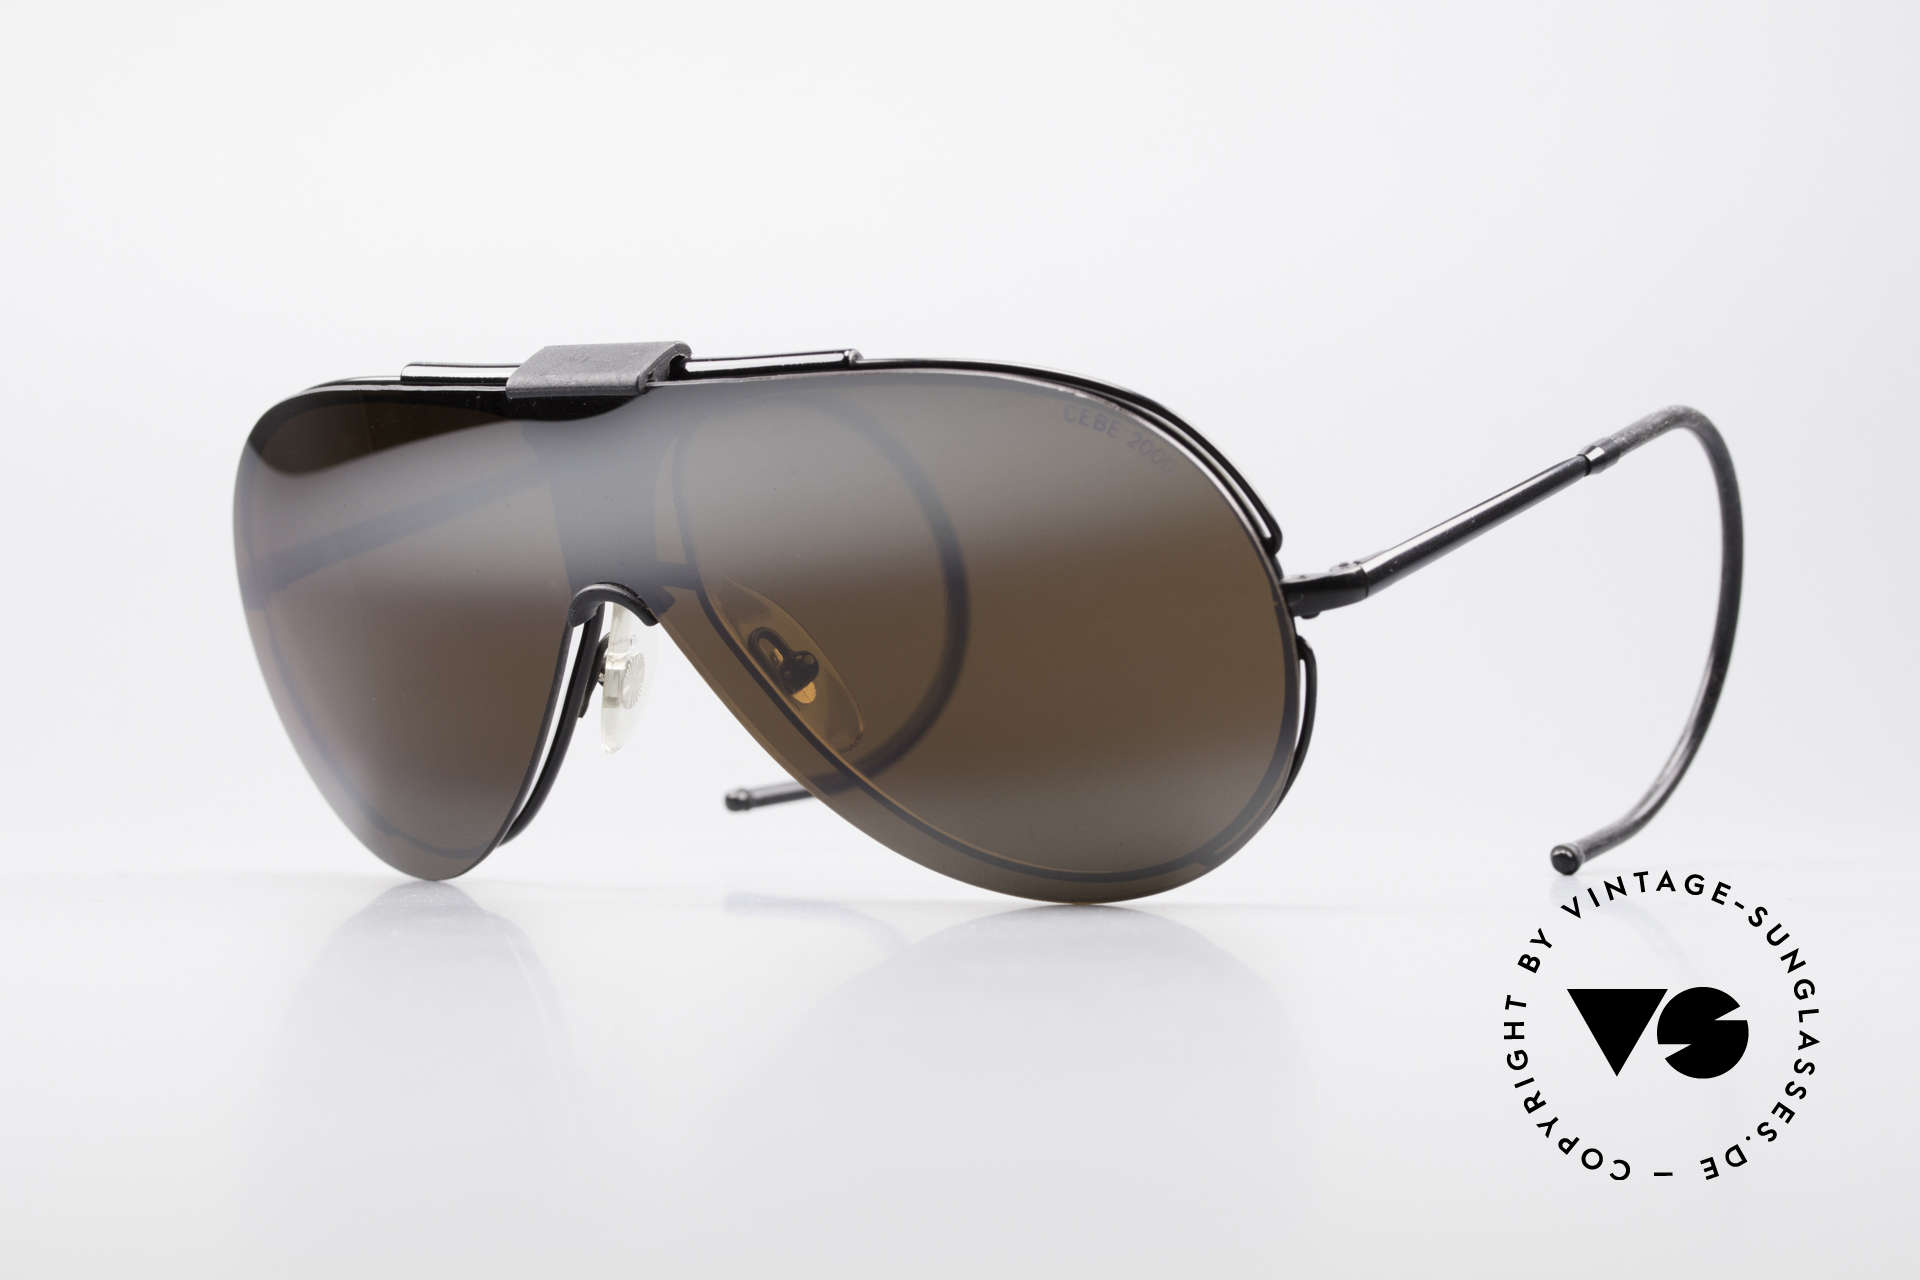 Cebe 2000 Rare Rallye Sports Shades, vintage CEBE sports shades - made for extreme purpose, Made for Men